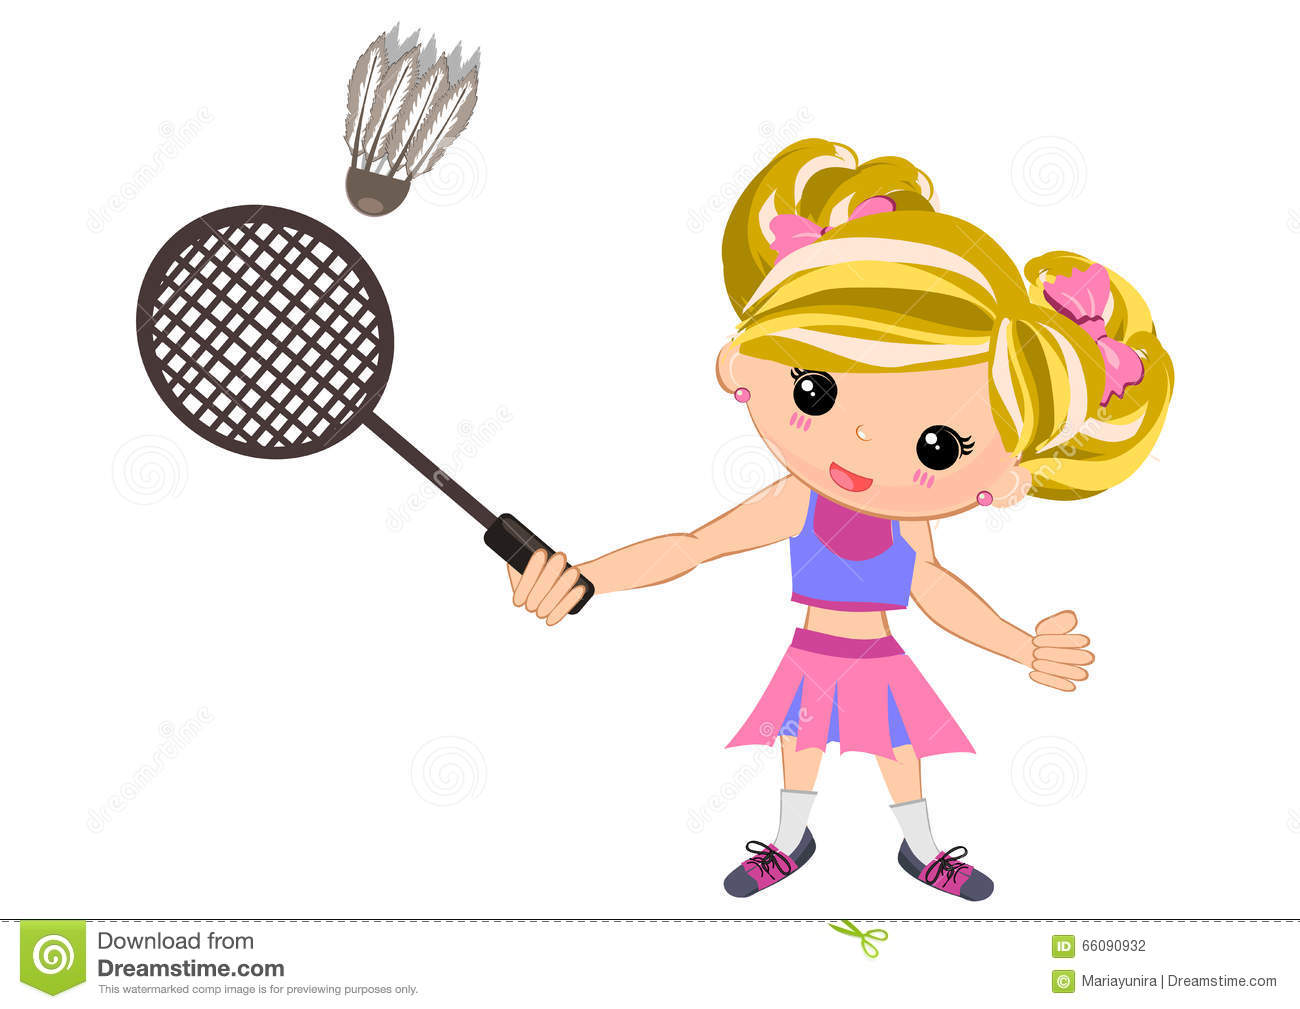 Kids playing badminton clipart 11 » Clipart Station.